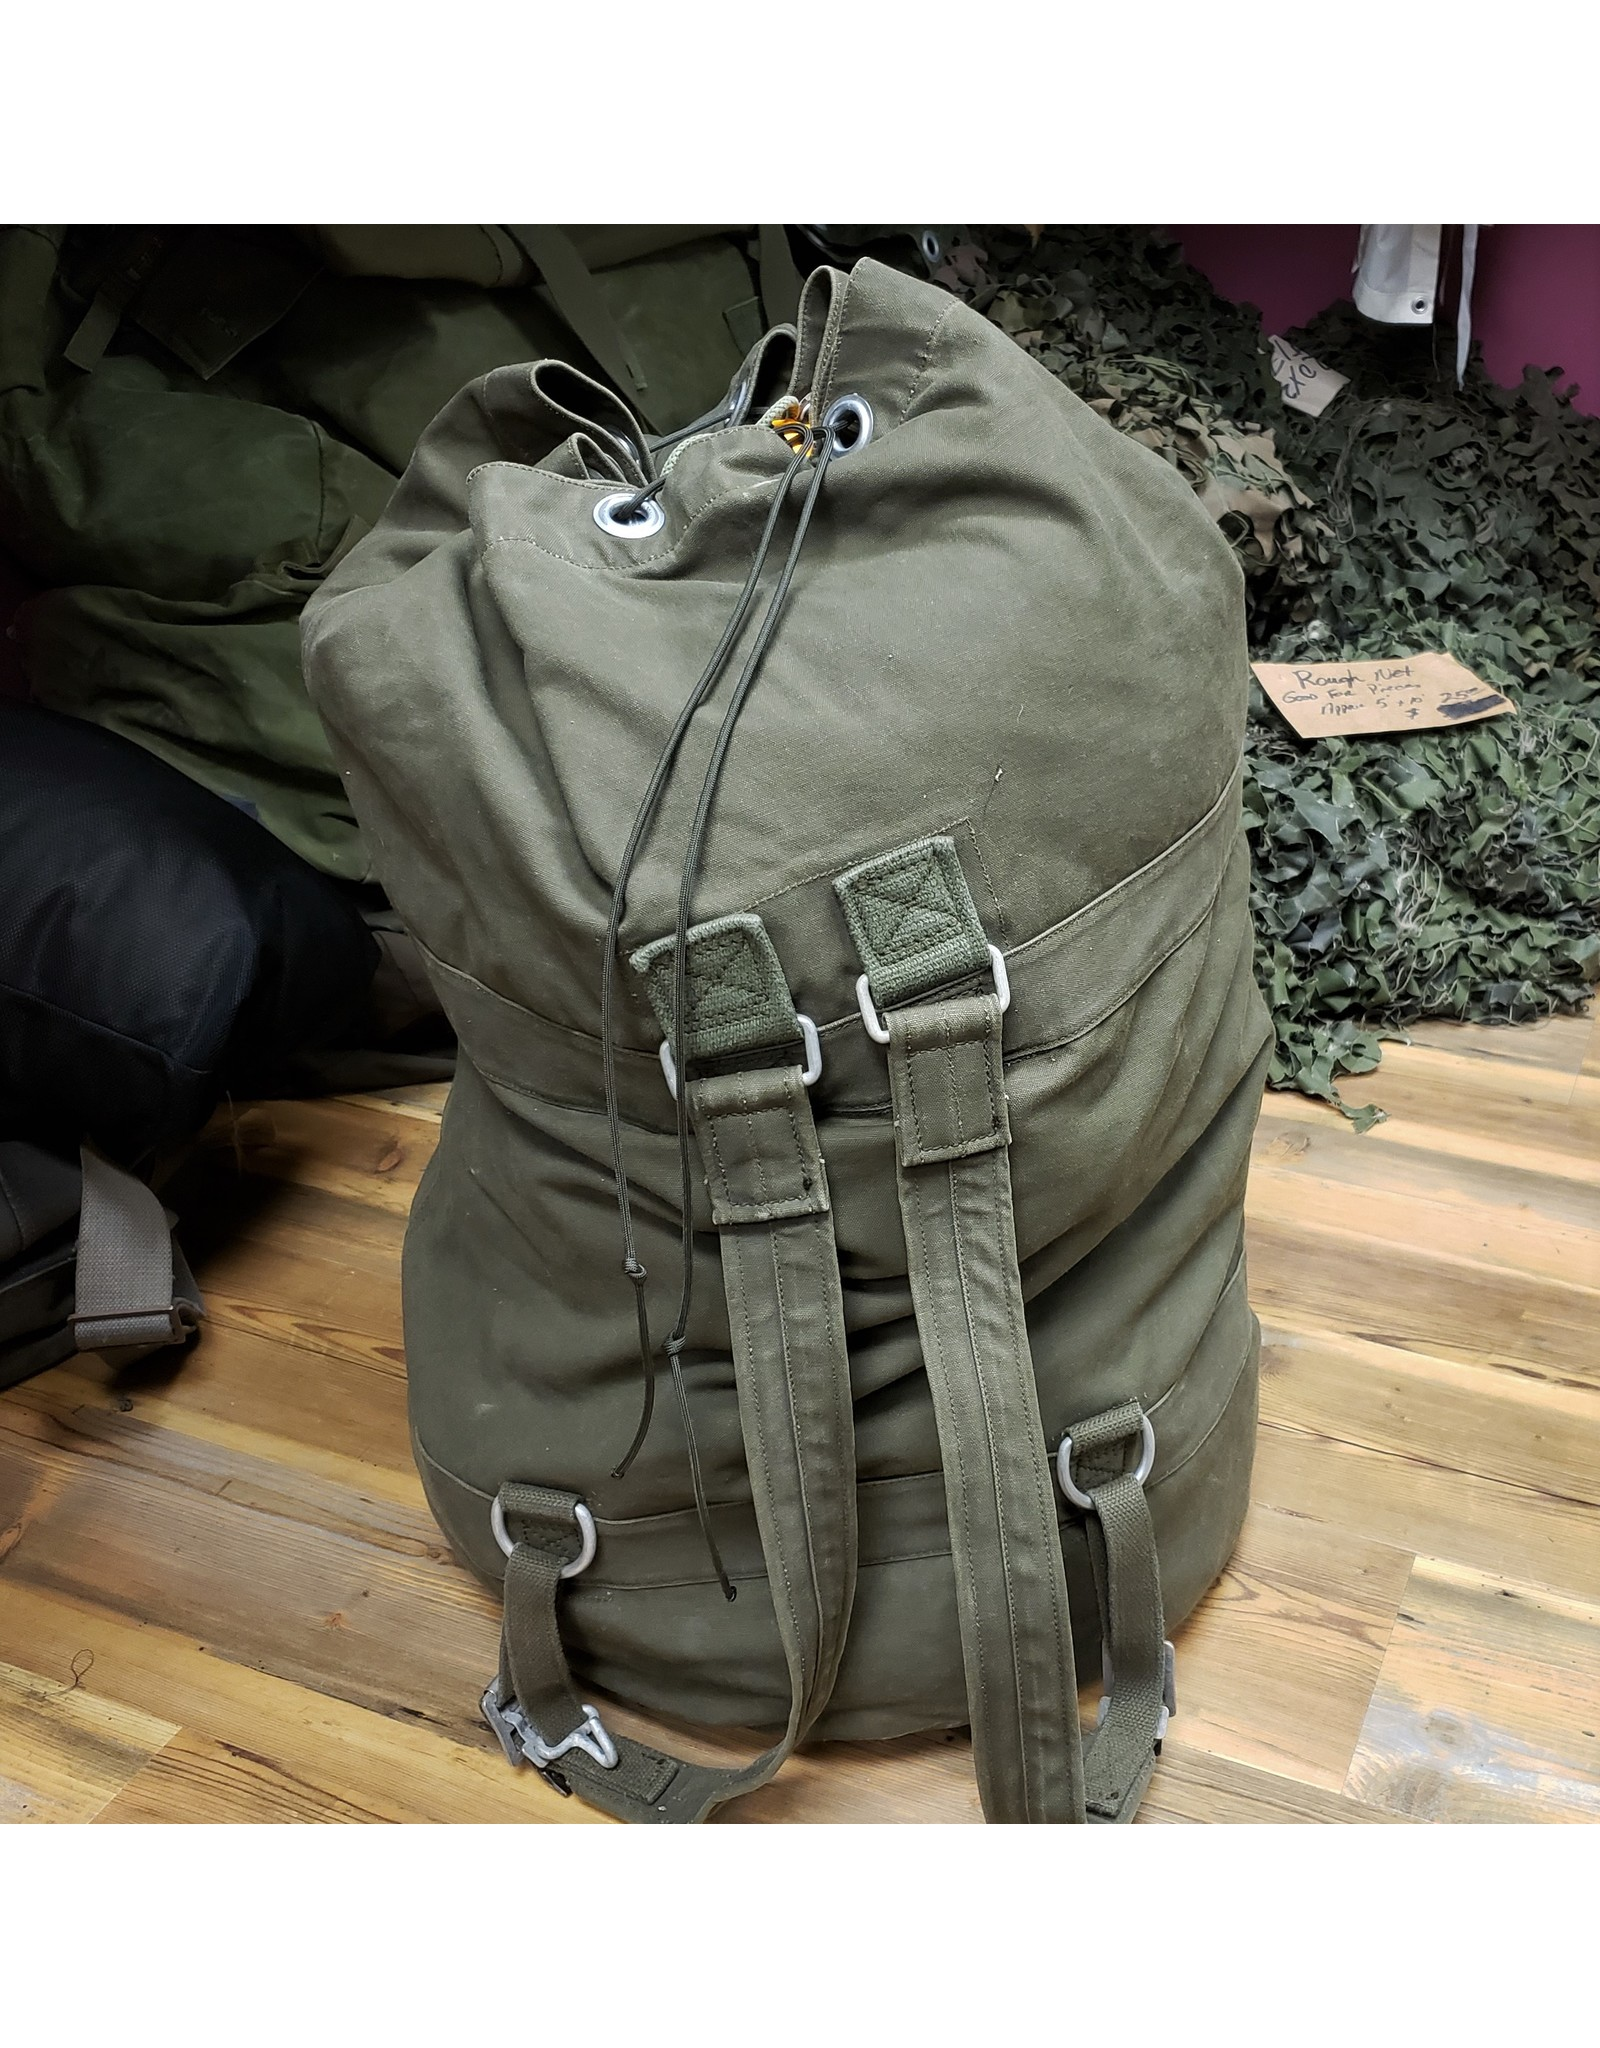 SURPLUS GERMAN TOP LOAD CANVAS DUFFLE BAG